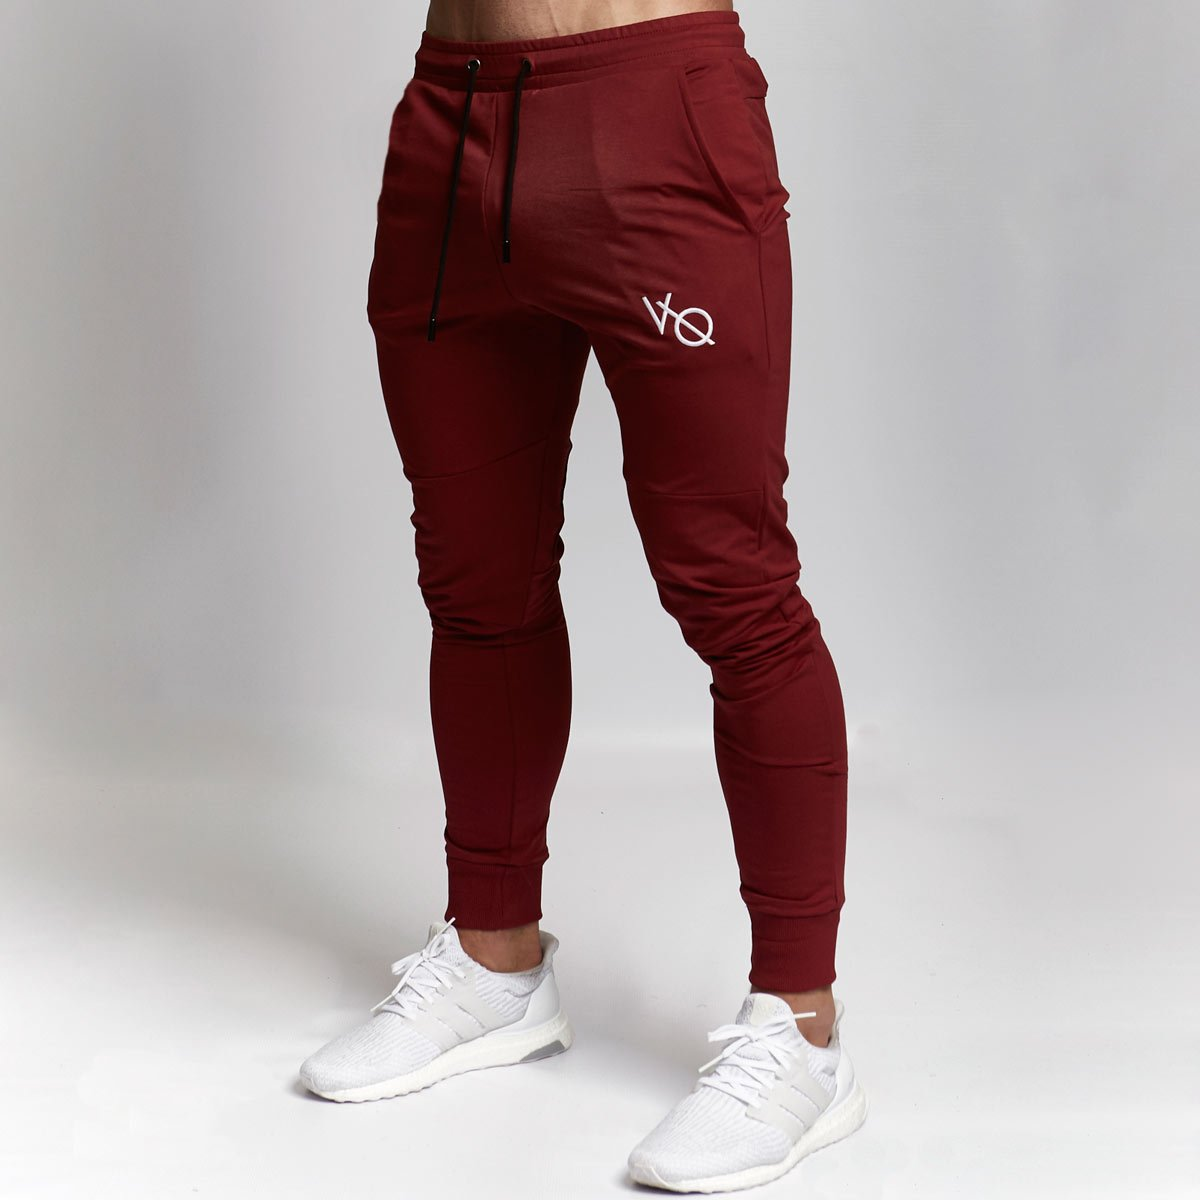 VQ Exodus Red Tapered Bottoms Fashion joggers